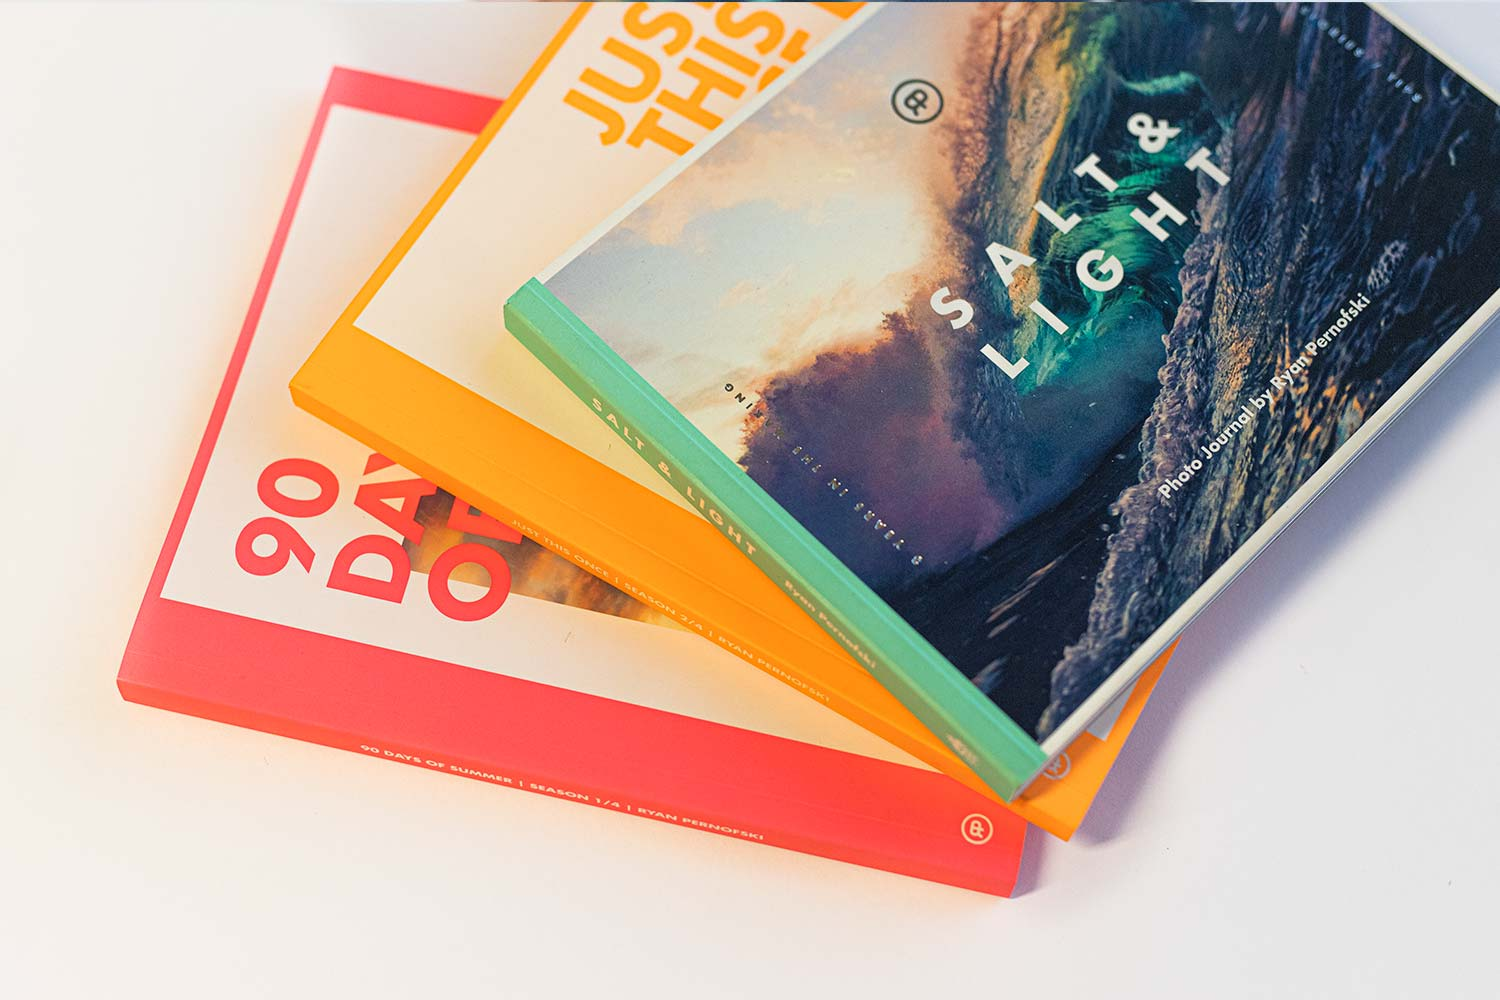 Photo Books - Photo Journals by Ryan Pernofski (signed copies)